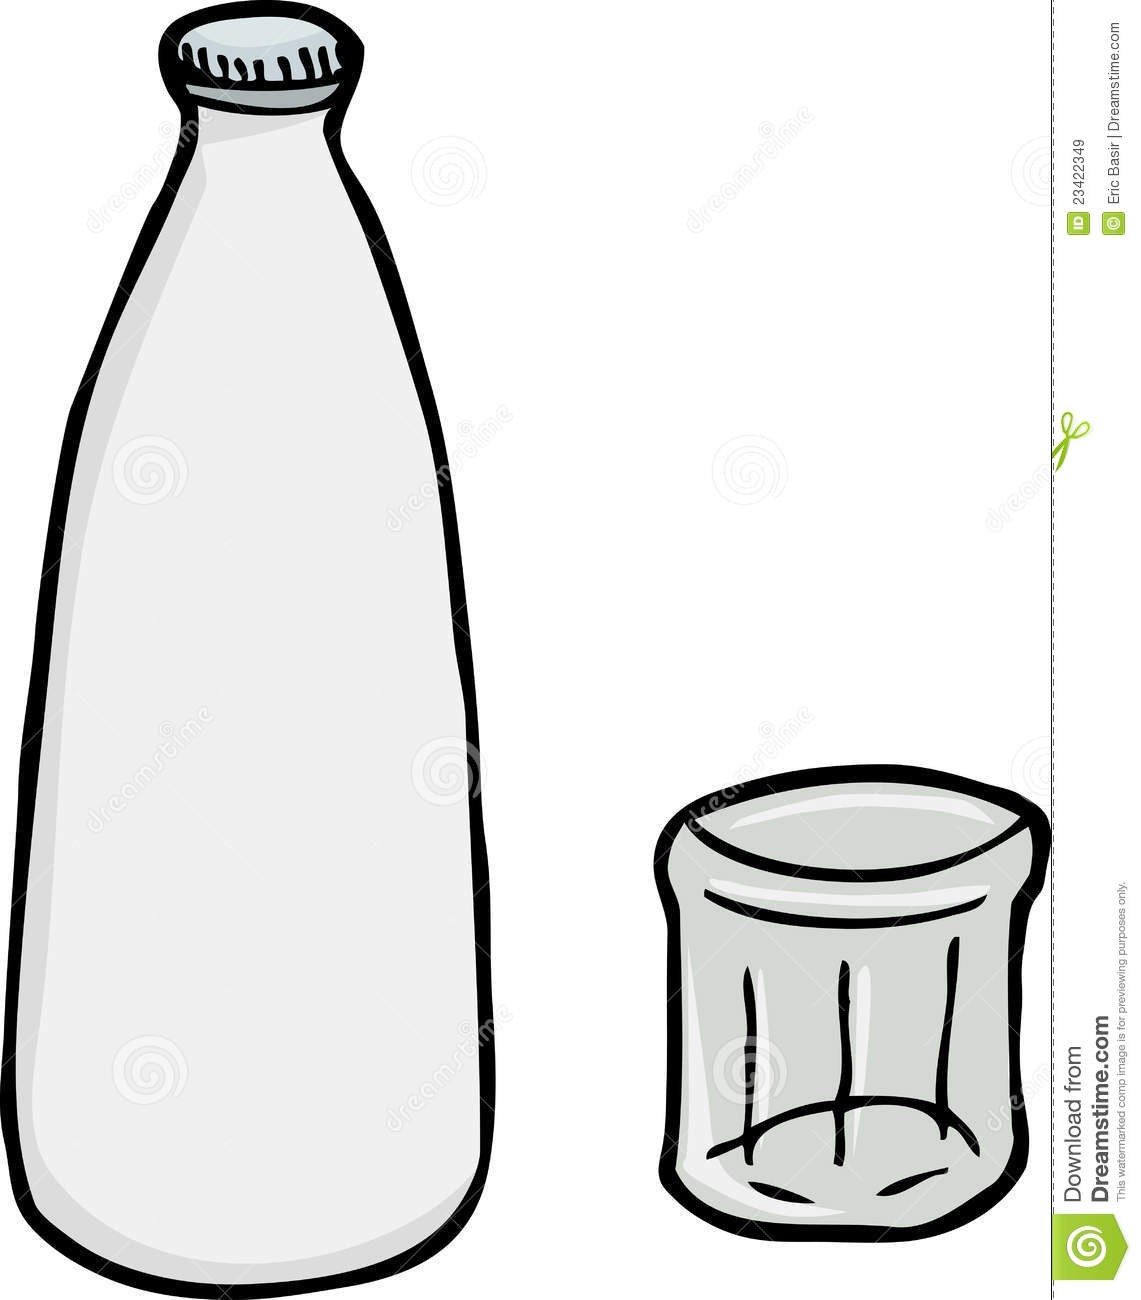 Milk glass bottle clipart clipart royalty free library With Clipart Of Milk Glass Bottle 23422349 | Clip Art clipart royalty free library